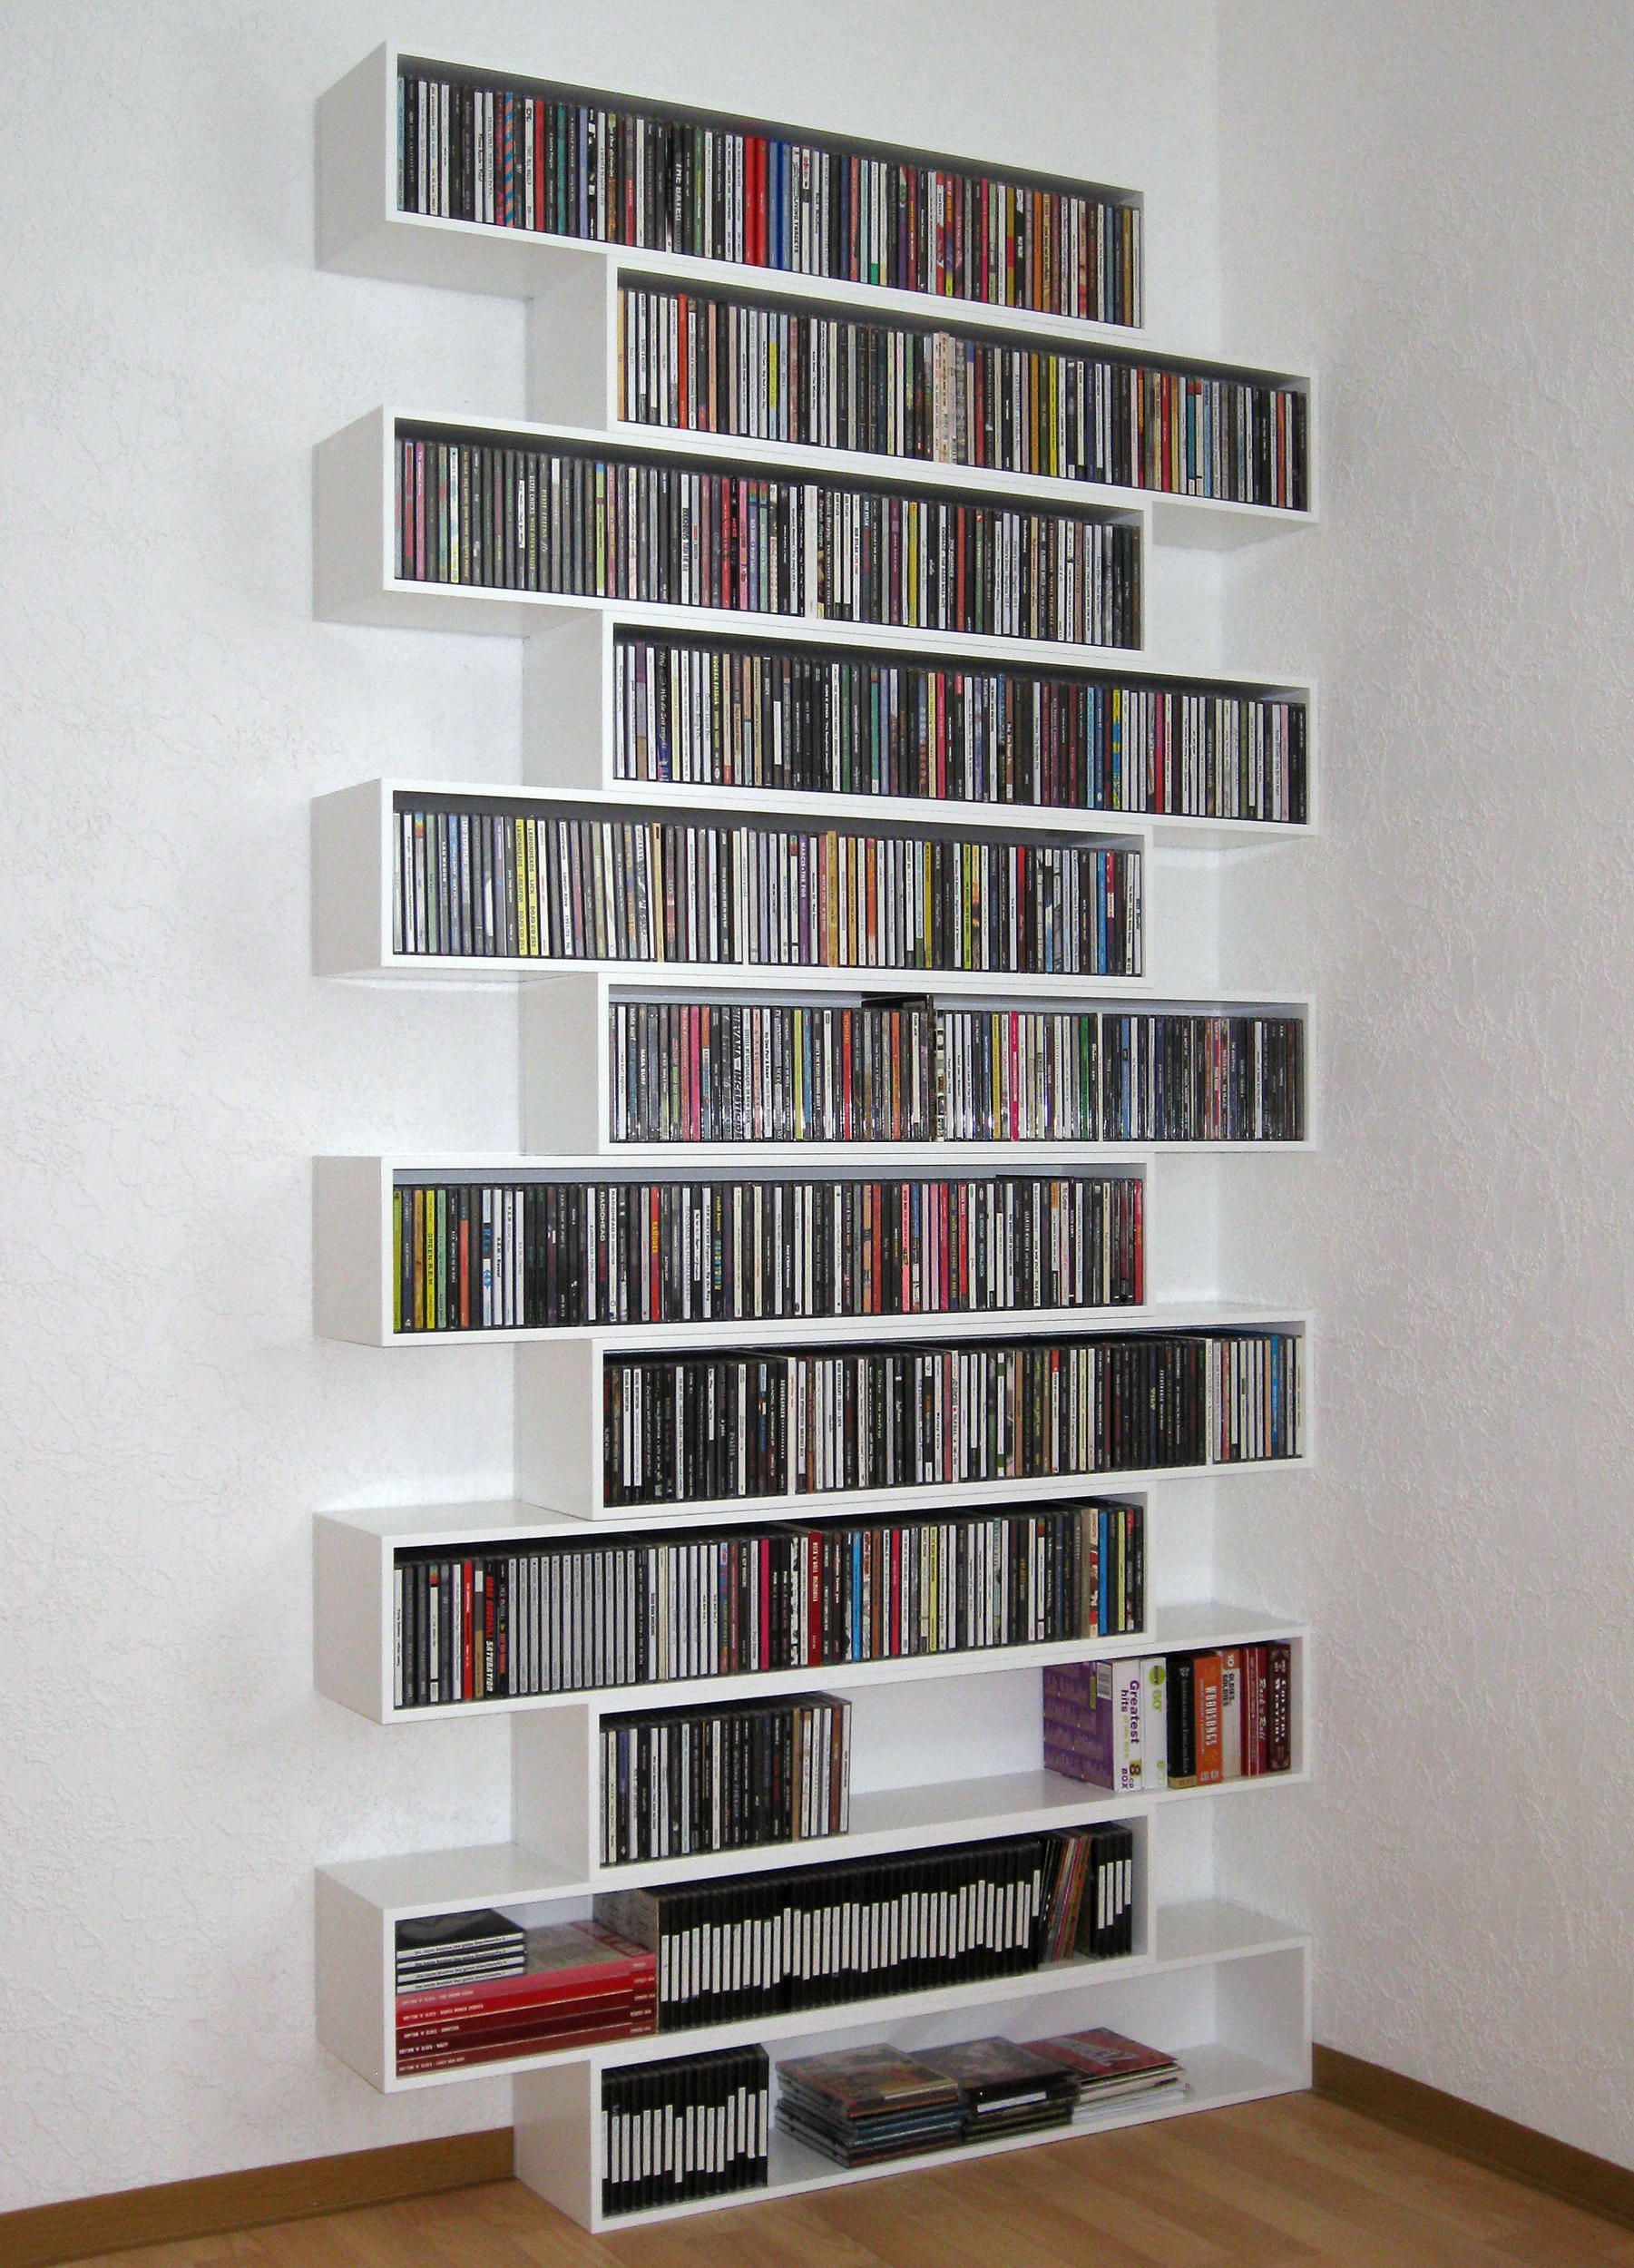 cubit shelving system designer racks from all floating shelf informa information high resolution cads catalogues contact diy with hidden storage bunnings extension ladder ikea